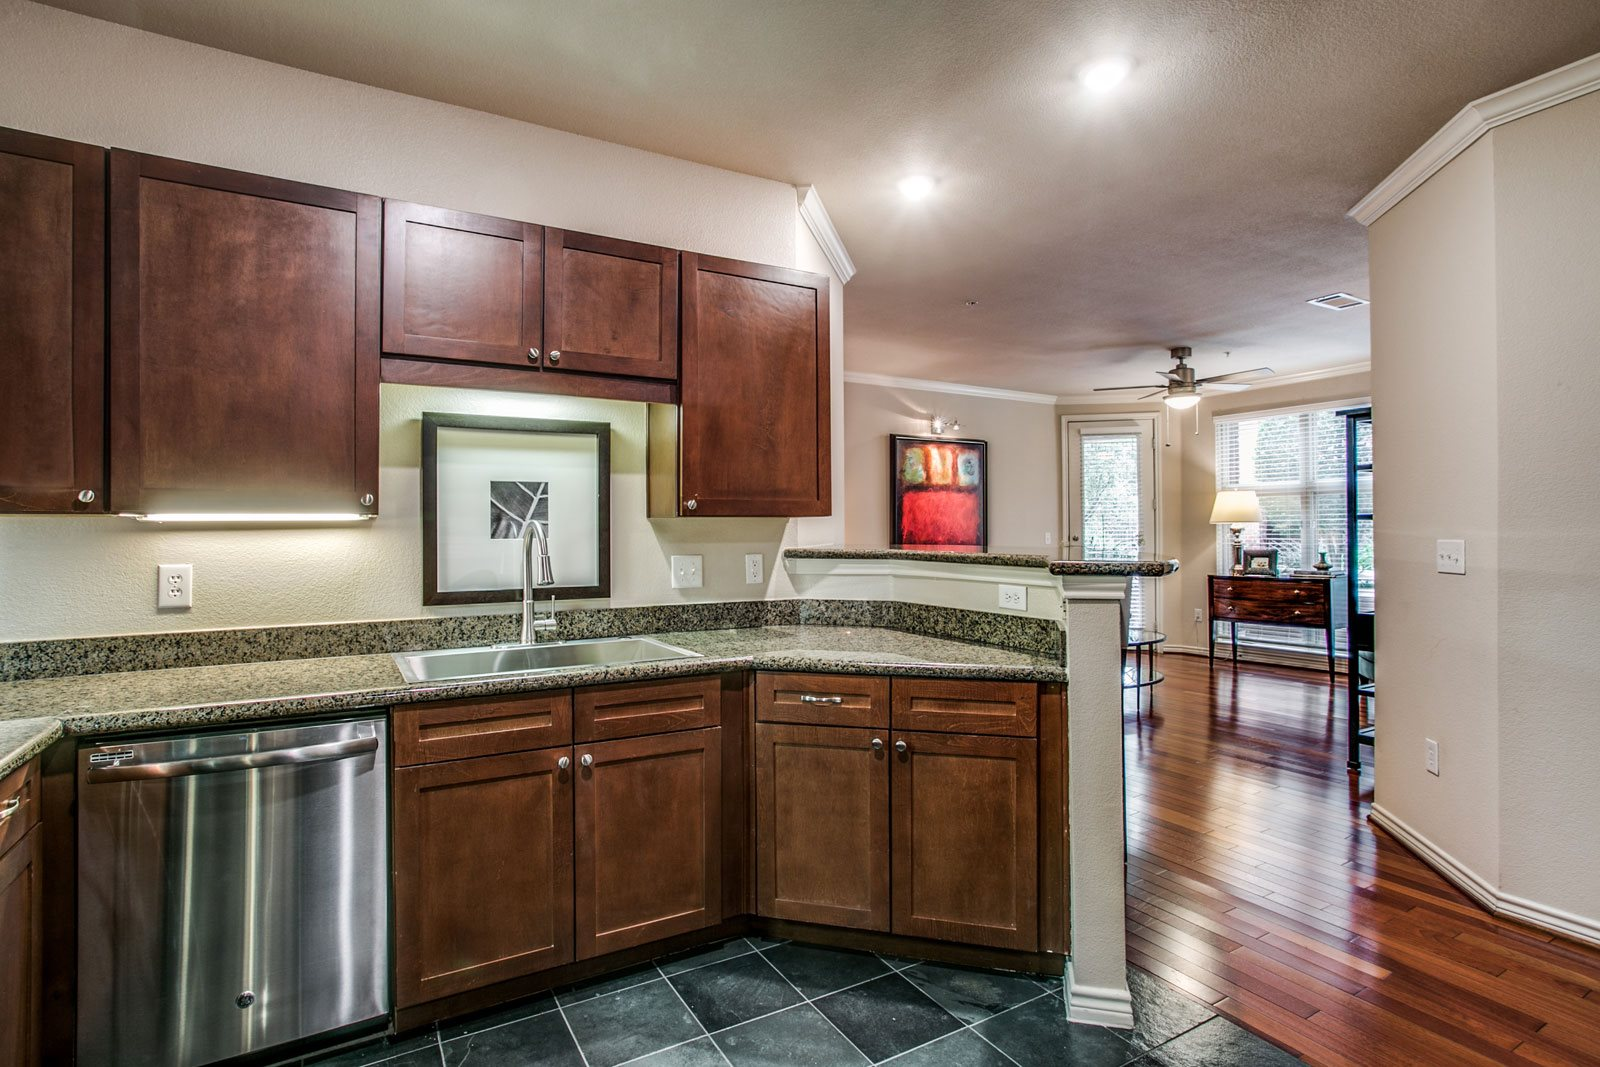 Upscale Stainless Steel Appliances at Trianon by Windsor, 2820 McKinnon Street, TX